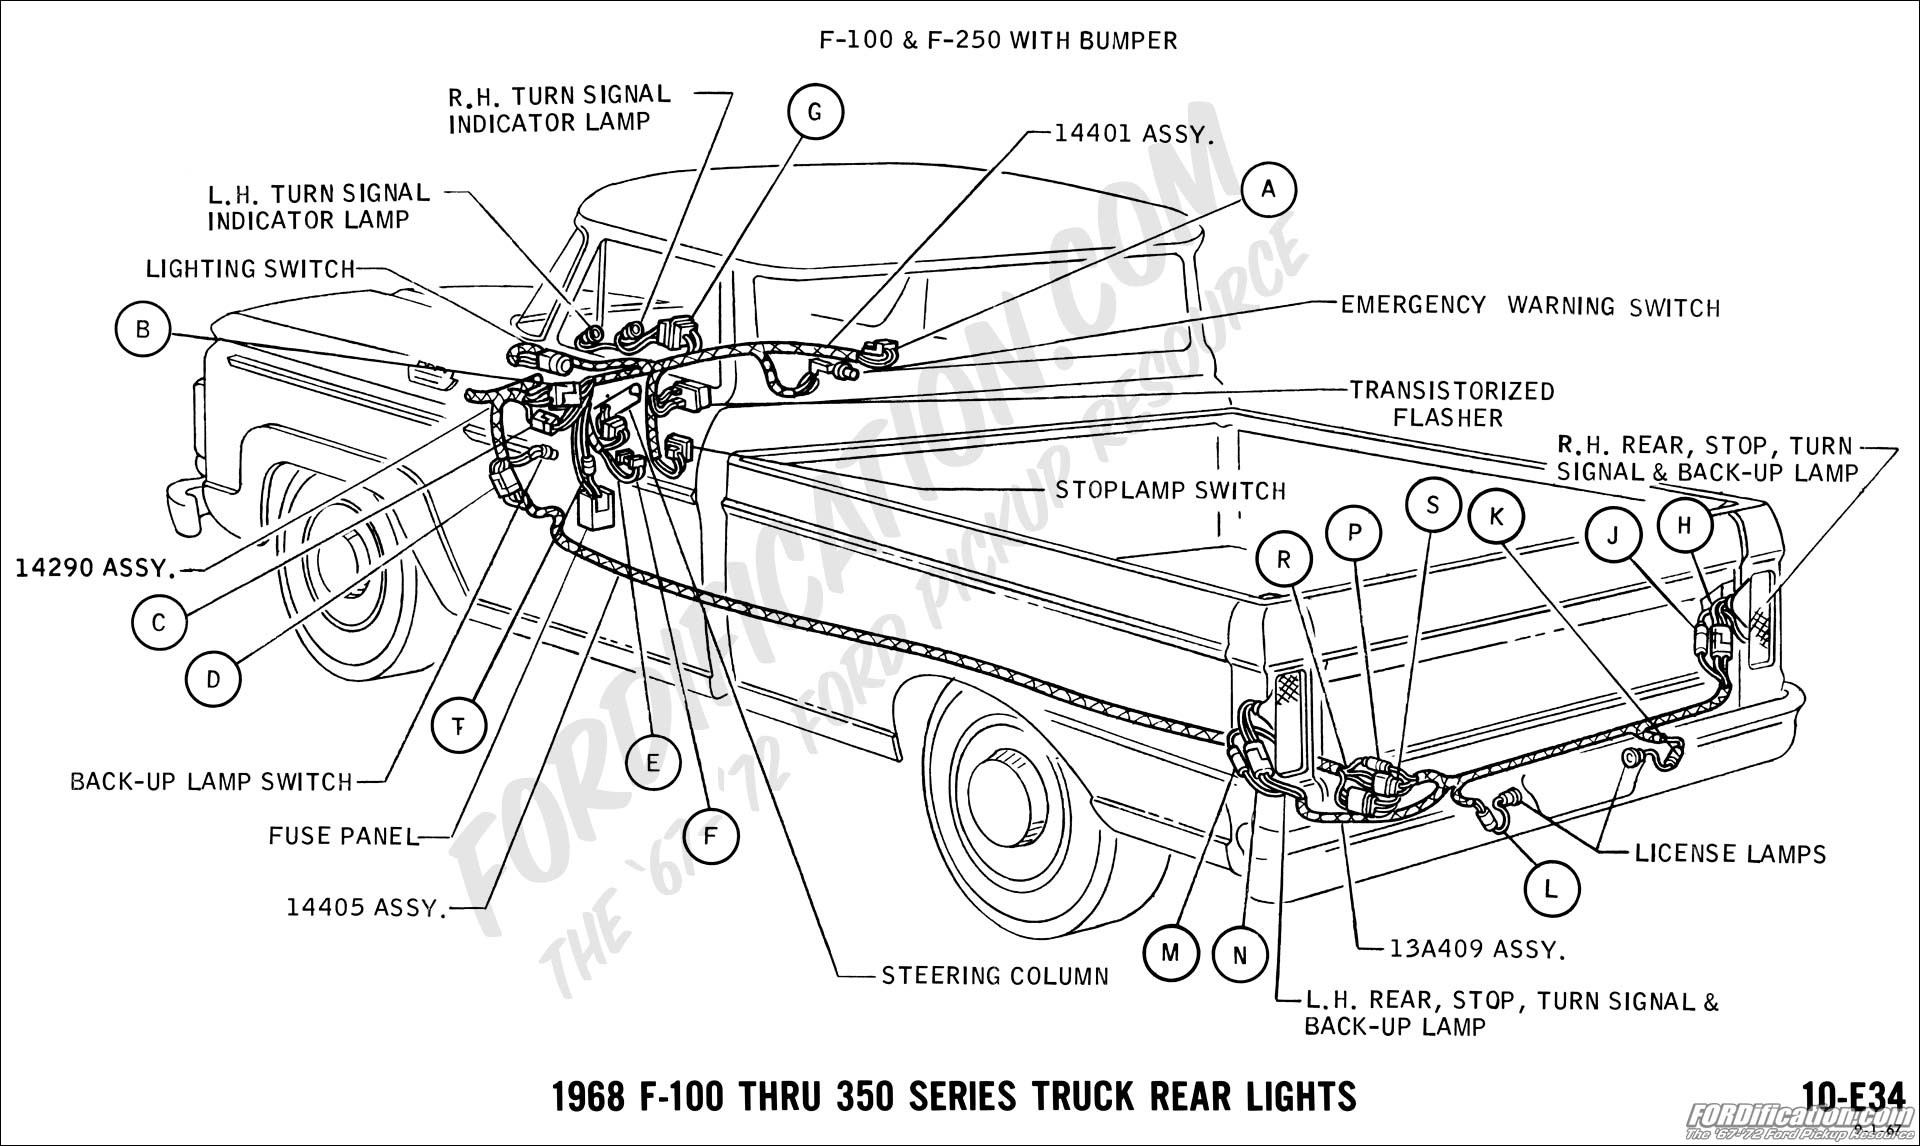 Chevy Silverado Parts Diagram Lifted fords ford Under the Hood Pinterest Of Chevy Silverado Parts Diagram Suburban Parts Diagram Besides Gm Bulkhead Connector Wiring Diagram